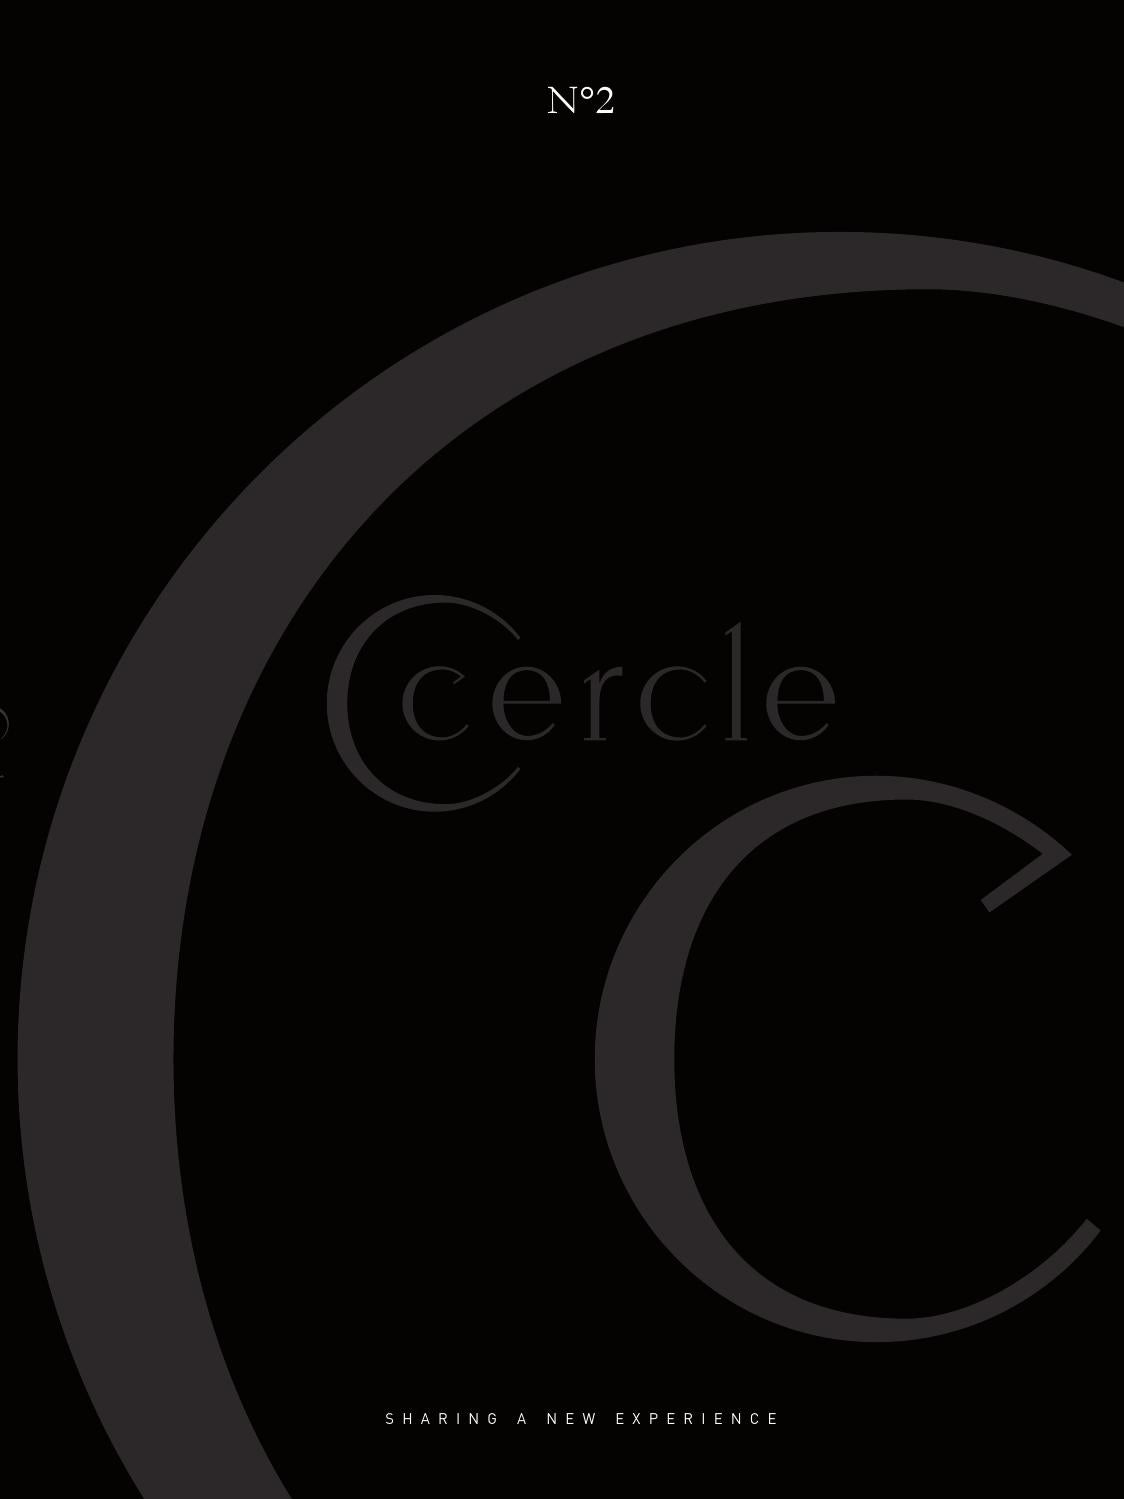 a200f252c8c Cercle n 2 by Ccercle - issuu